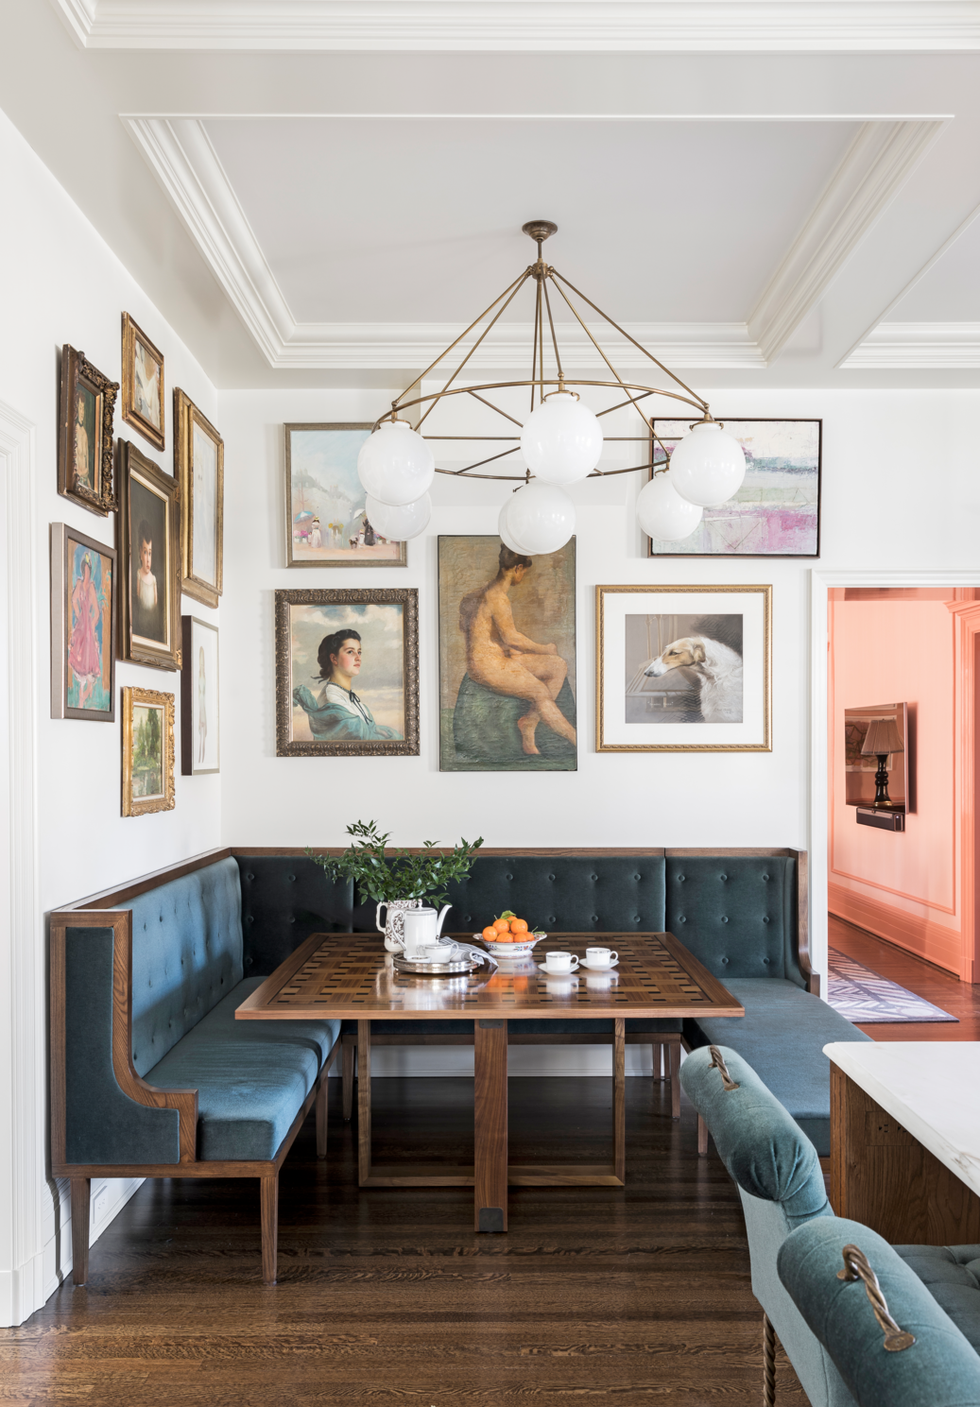 An interesting dining nook in a kitchen, with dining bench, gallery wall, beautiful chandelier and interesting ceiling.